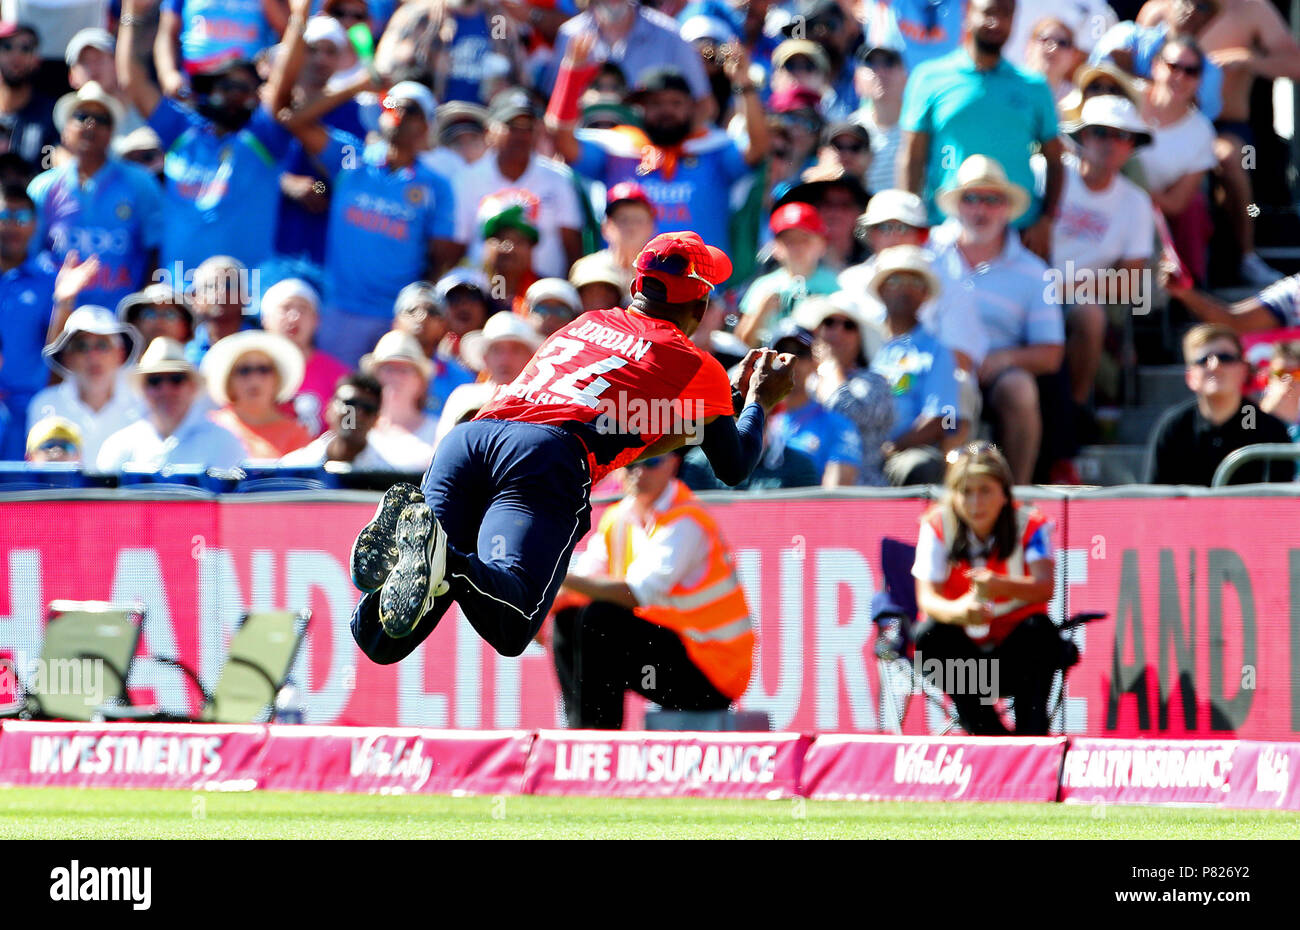 England's Chris Jordan catchesIndia's KL Rahul during the Second Vitality IT20 Series Match at the Brightside Ground, Bristol. - Stock Image